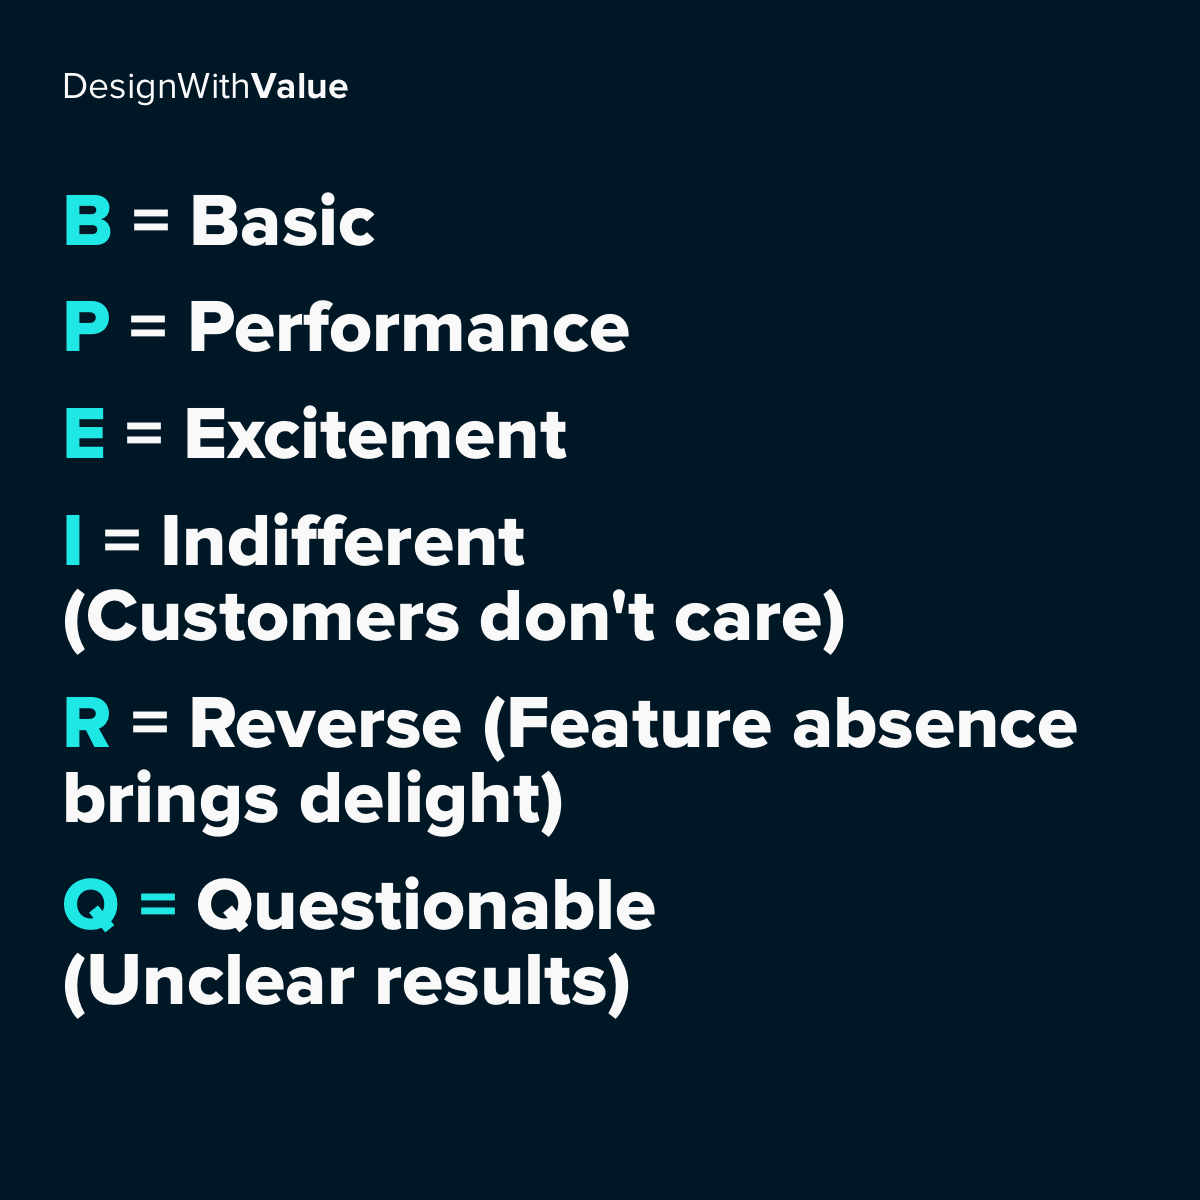 Summary of the feature types.